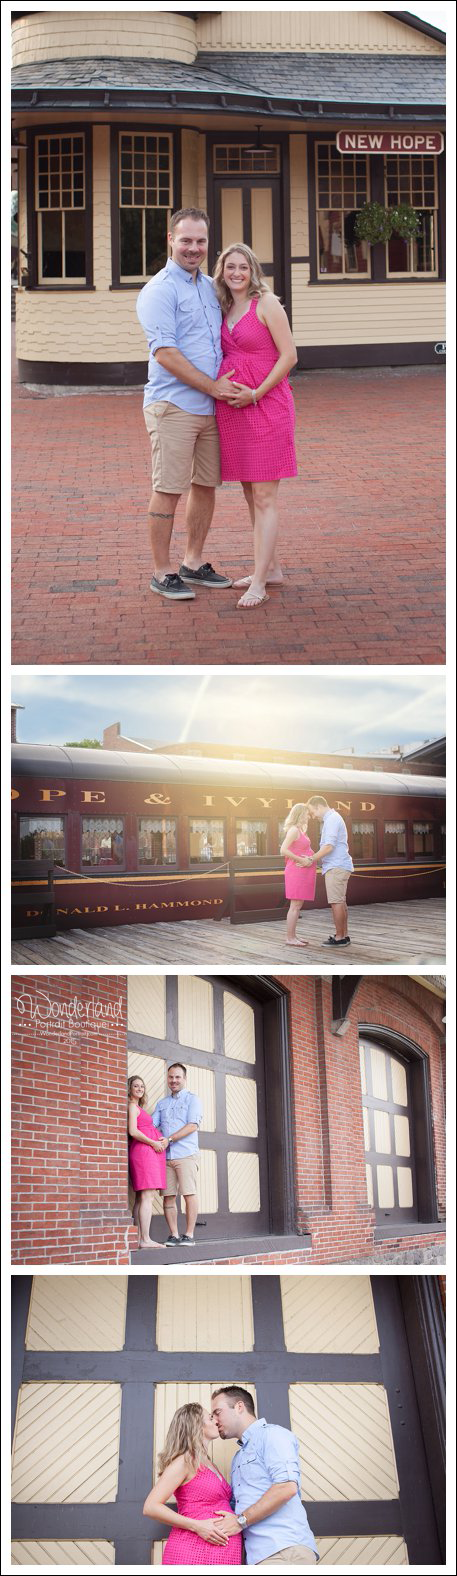 New Hope Train Station Bucks County Maternity Photographs | WonderlandPortrait.com